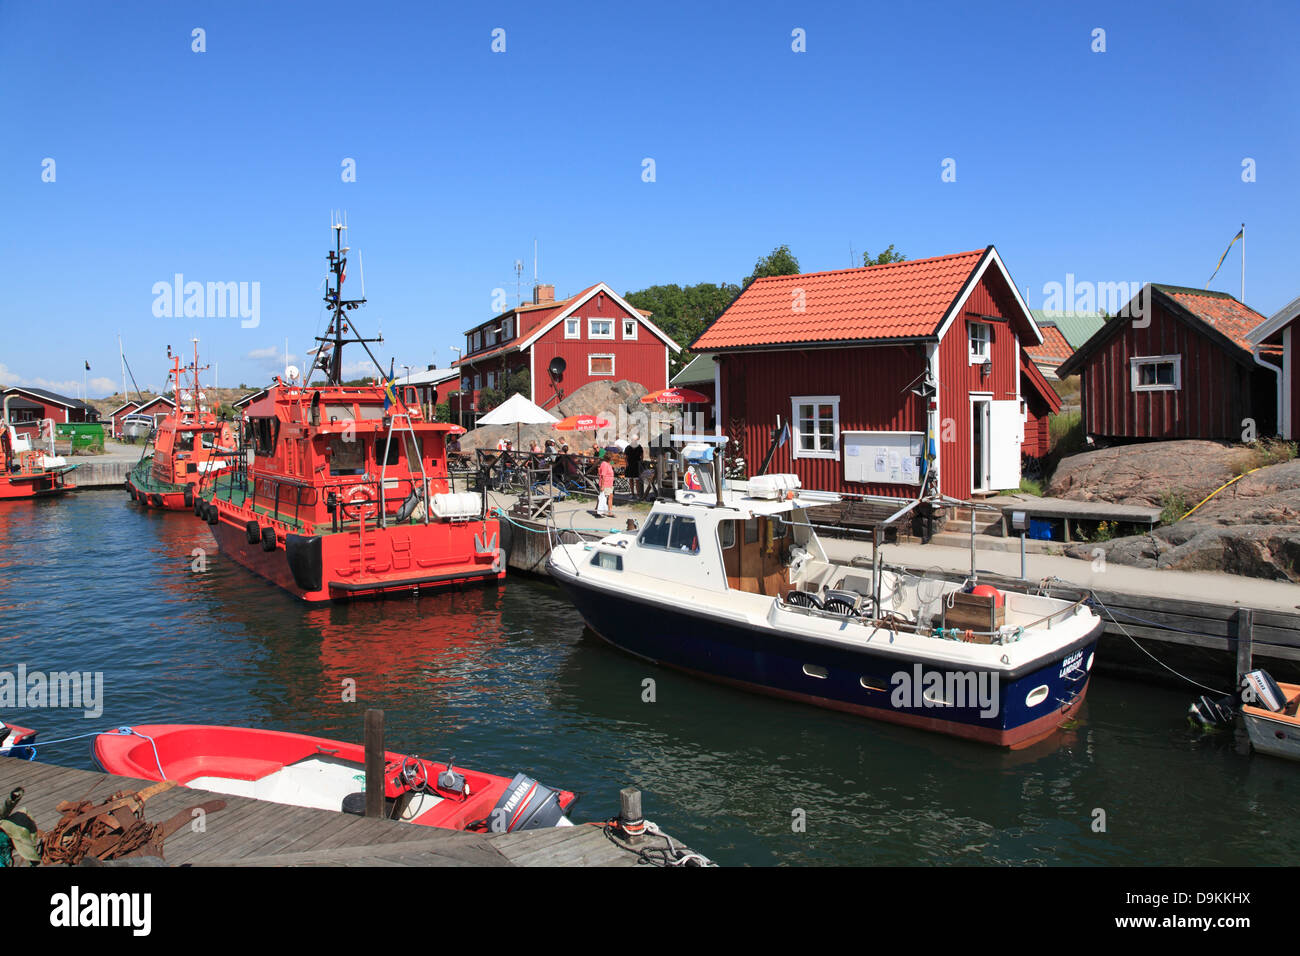 Pilot boat in the harbor of Landsort Island (Oeja), harbor, Stockholm Archipelago, baltic sea coast, Sweden, Scandinavia Stock Photo